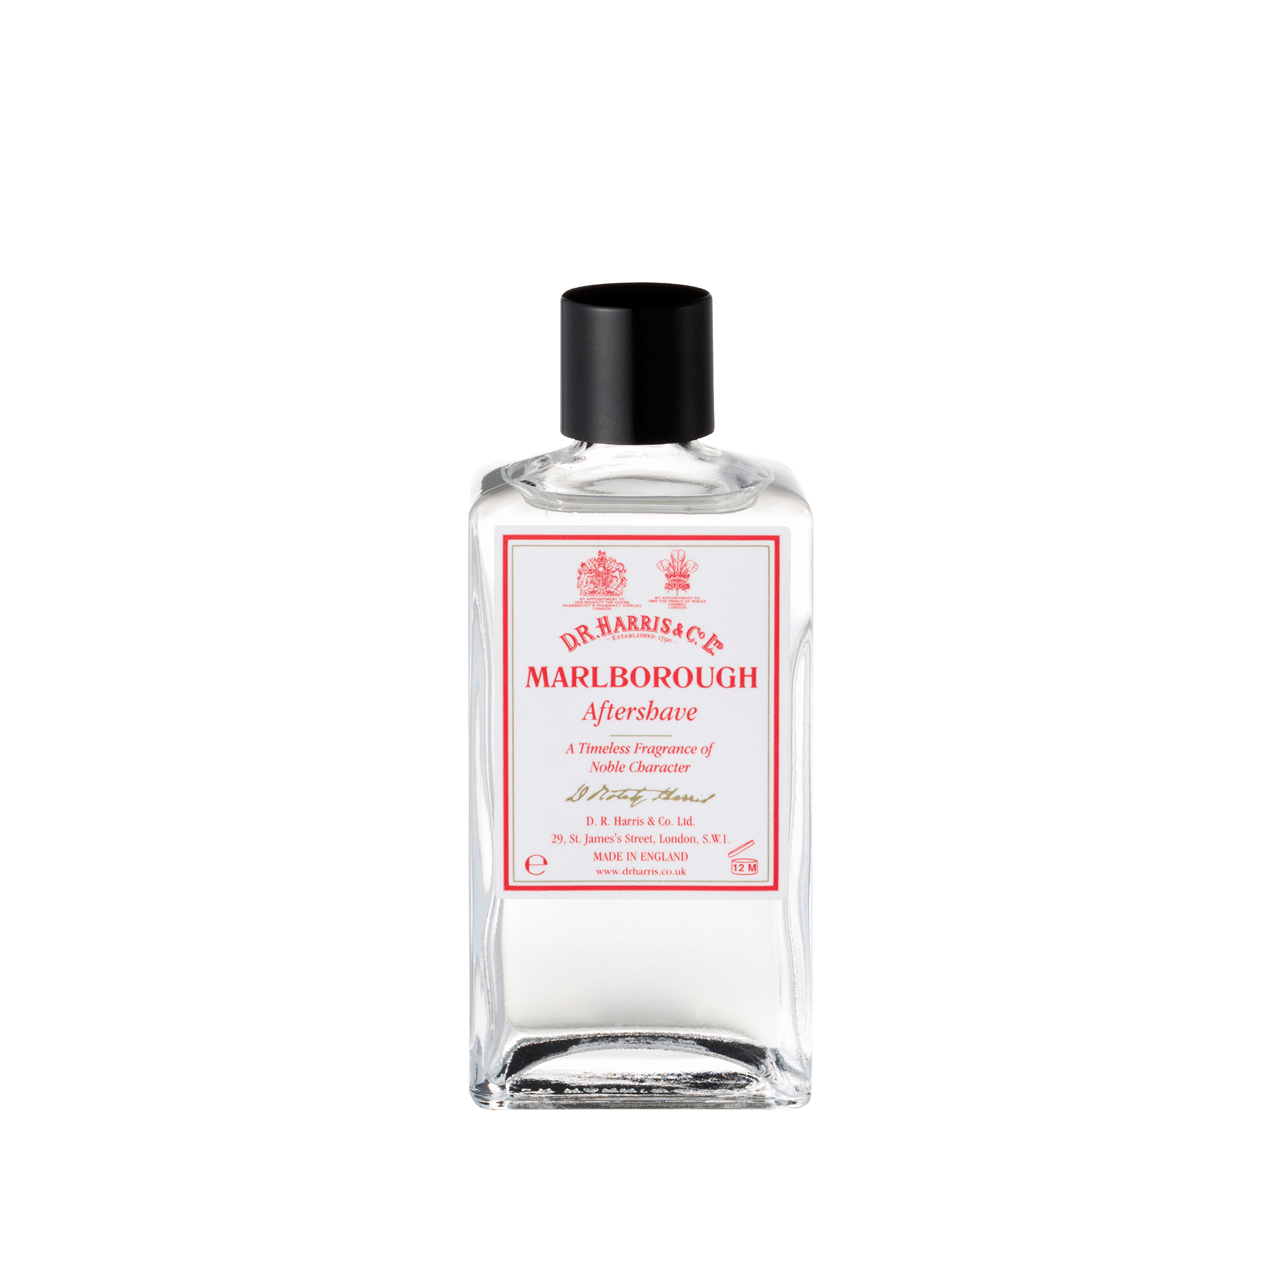 Marlborough - After Shave Lotion